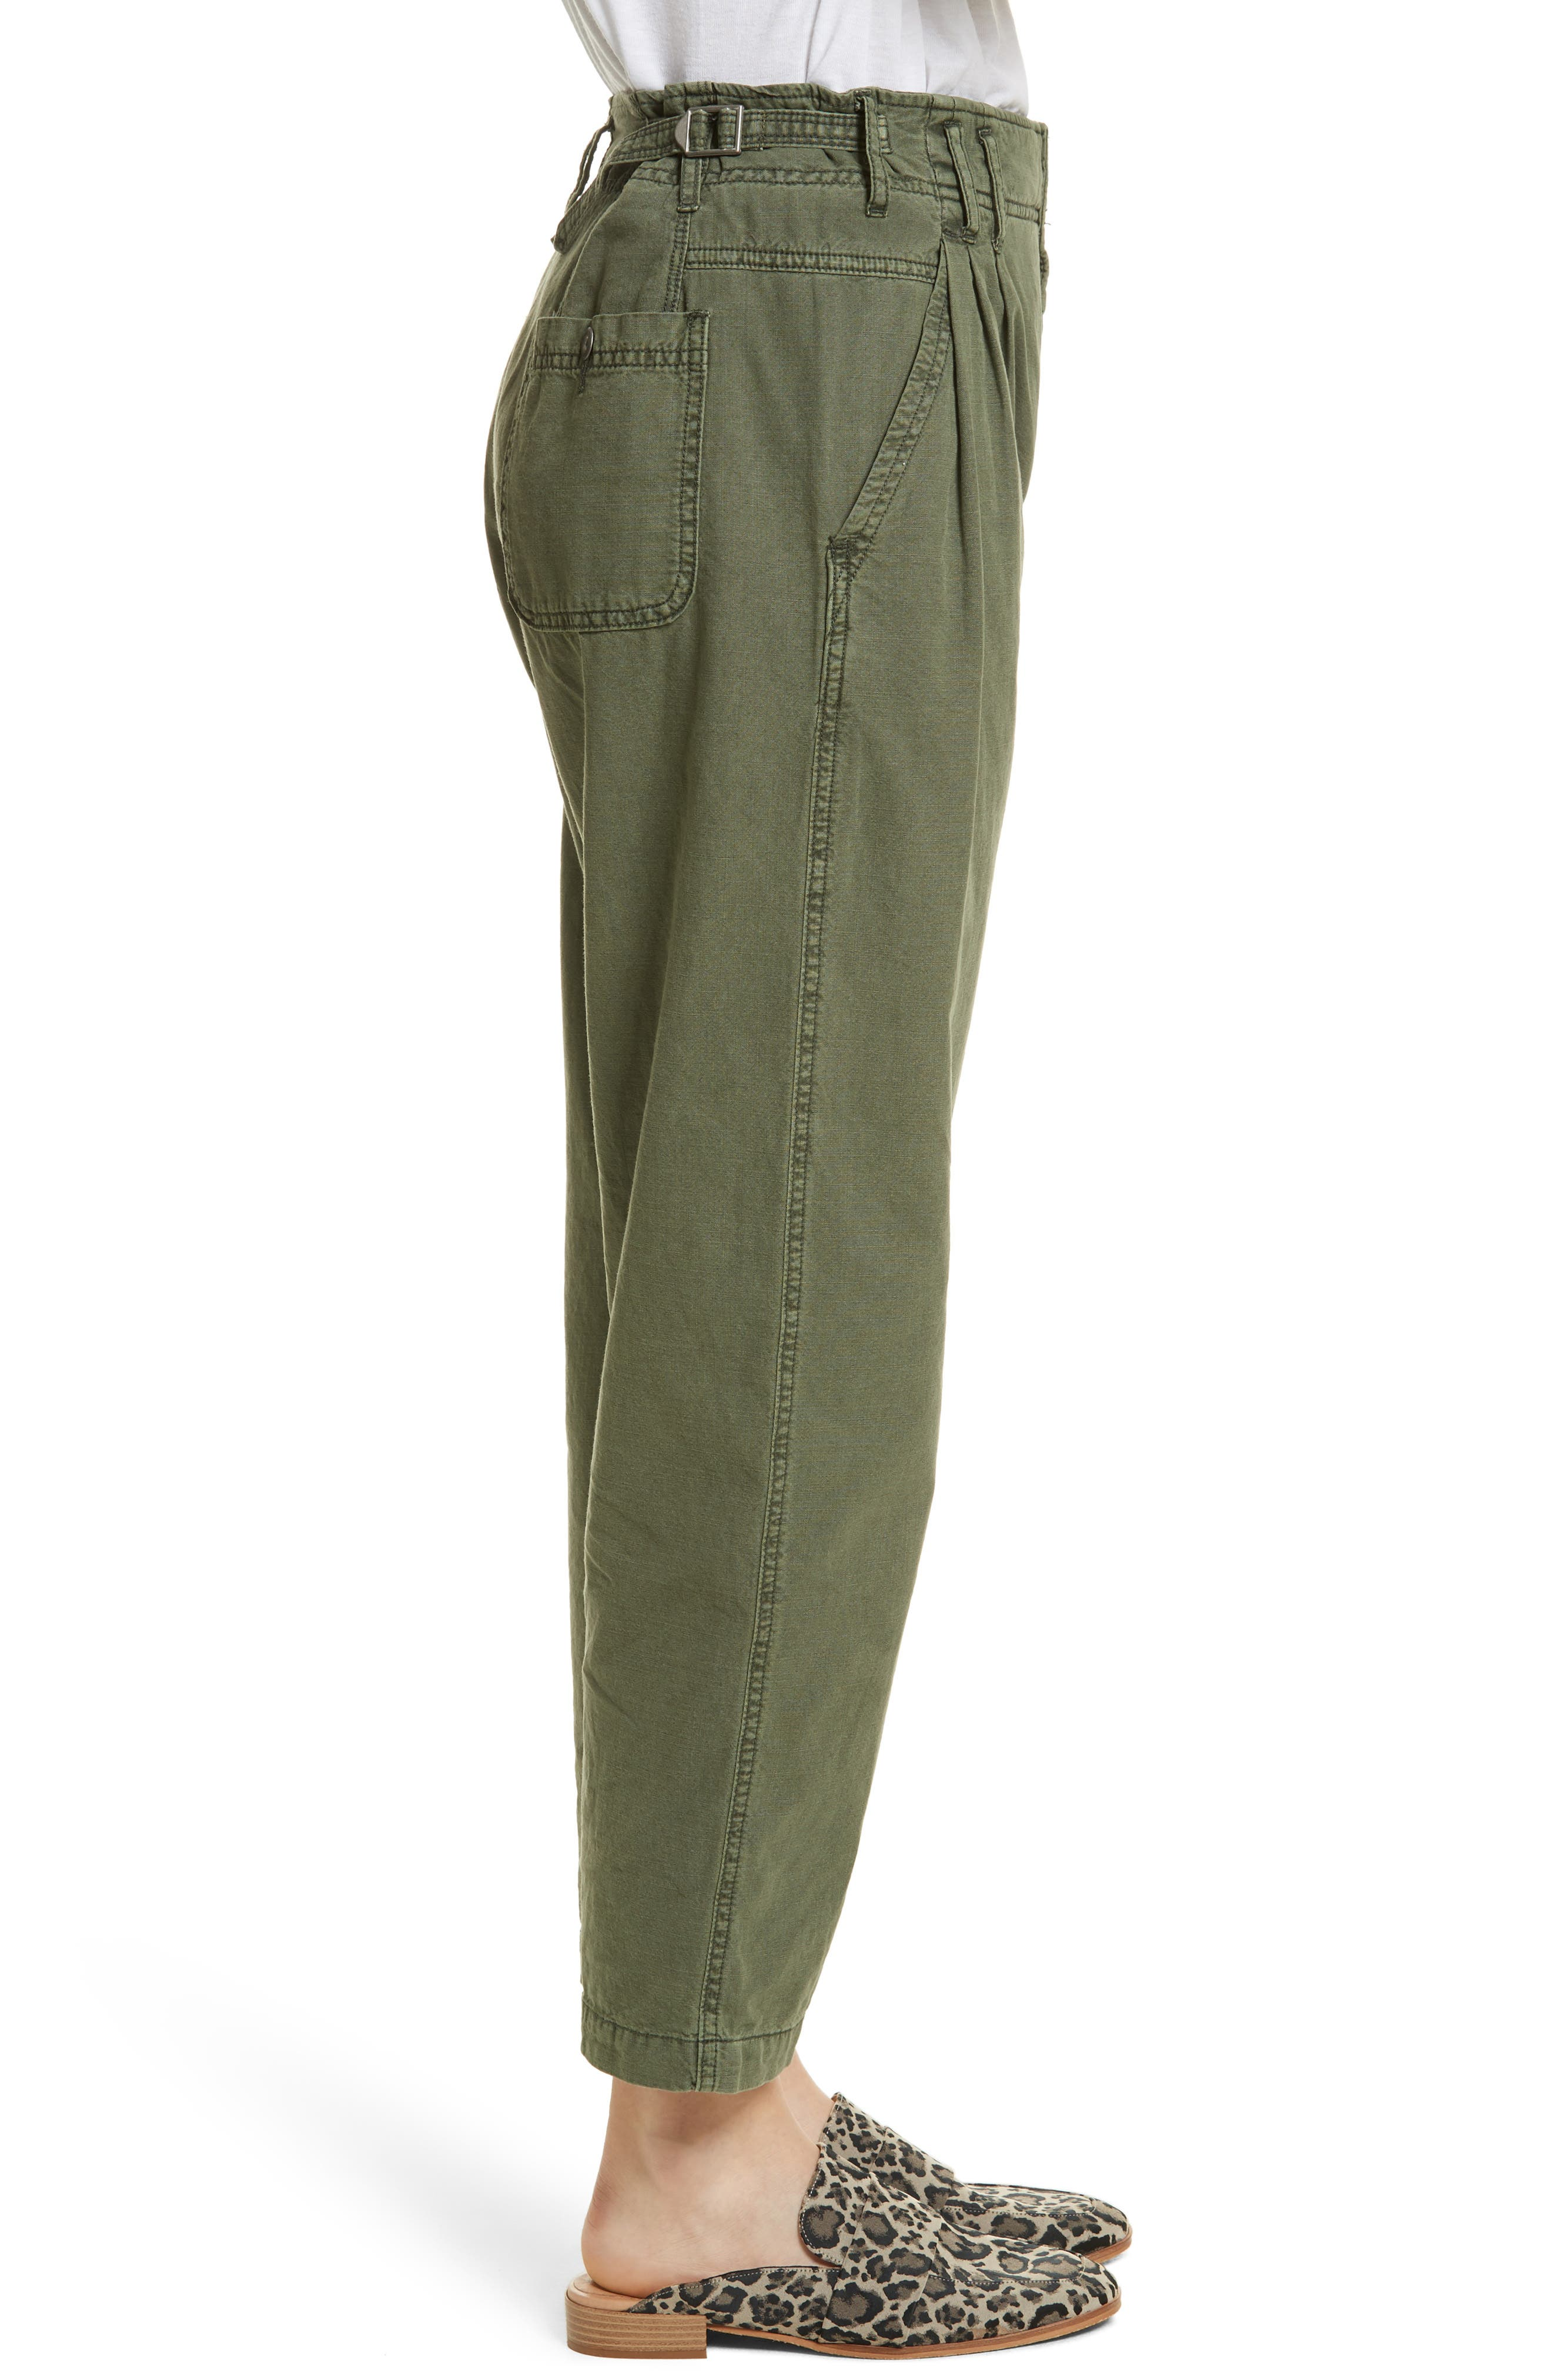 Compass Star Trousers,                             Alternate thumbnail 3, color,                             328